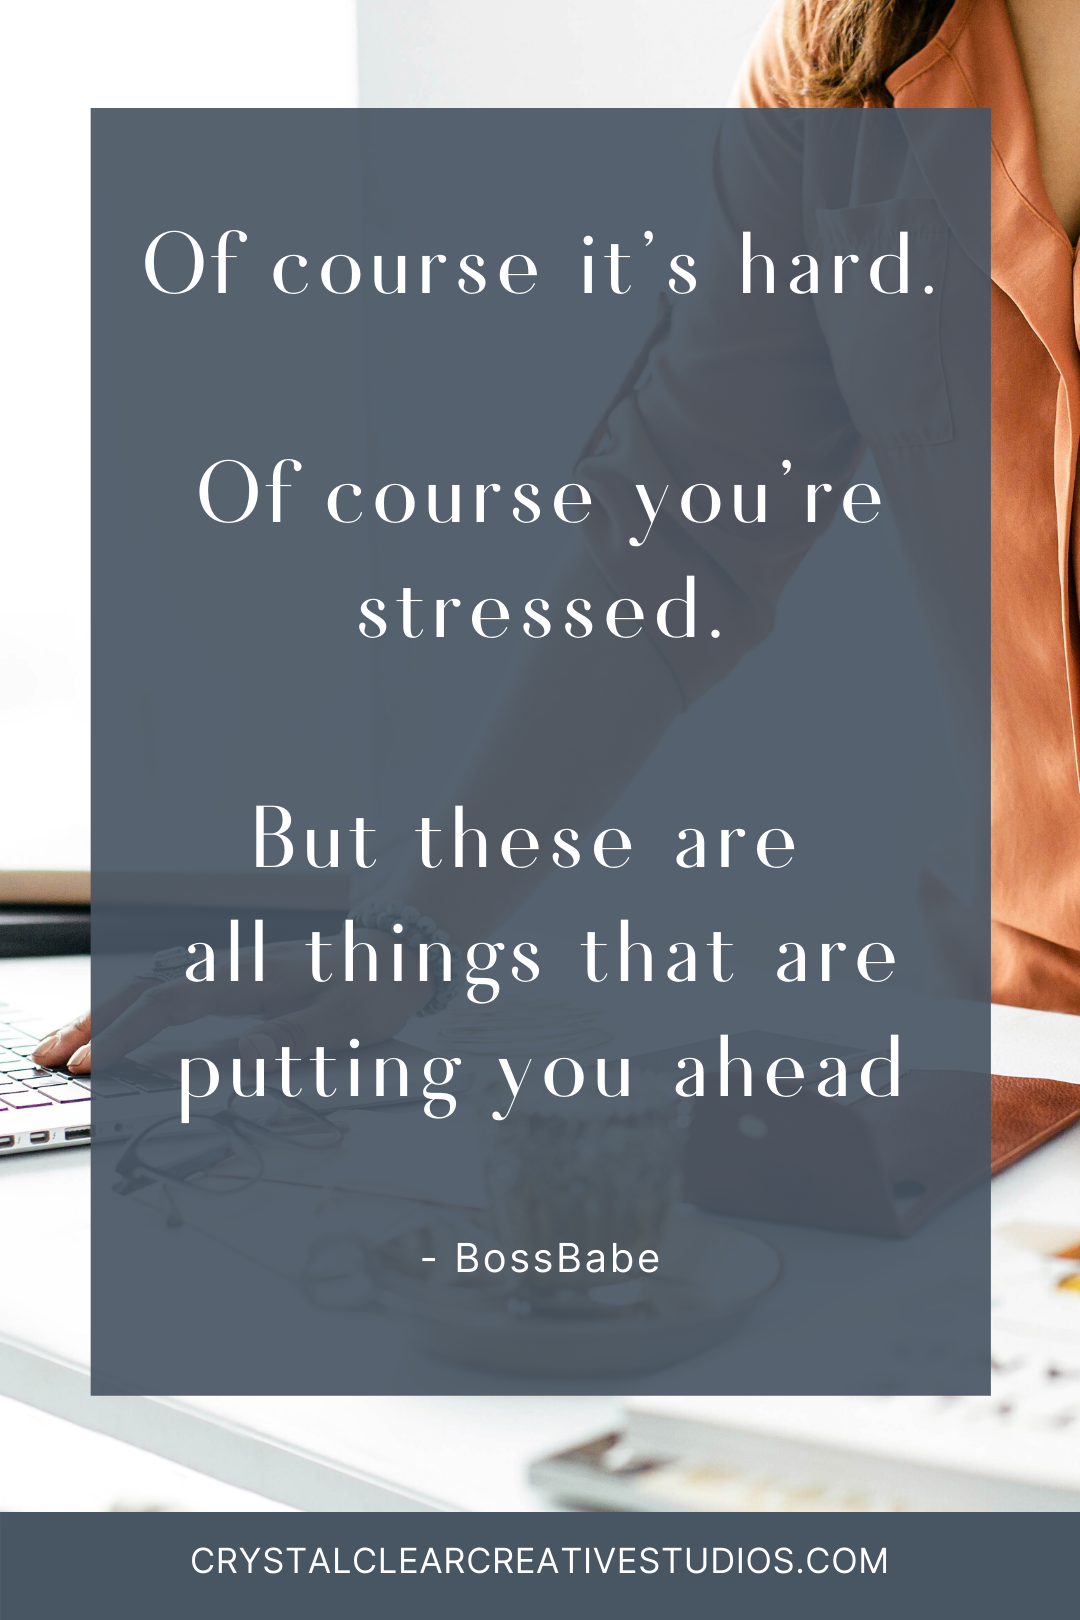 Of course it's hard. Of course you're stressed. But these are all things that are putting you ahead.